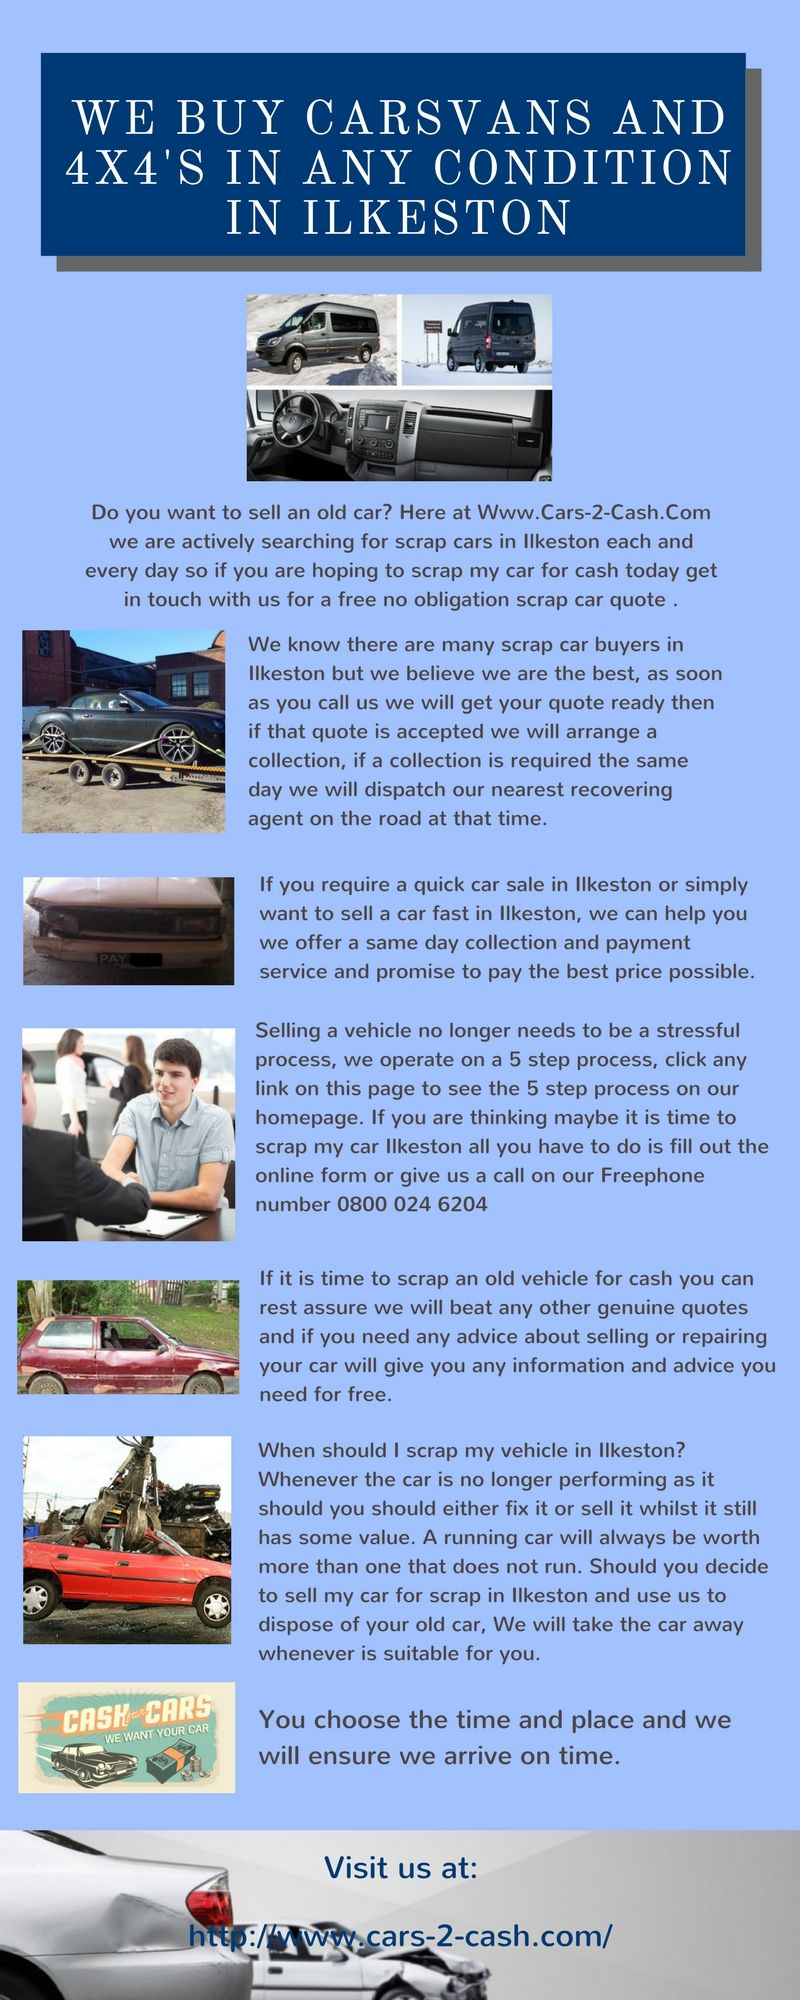 Do you want to sell an old car? Here at Www.Cars-2-Cash.Com we are ...